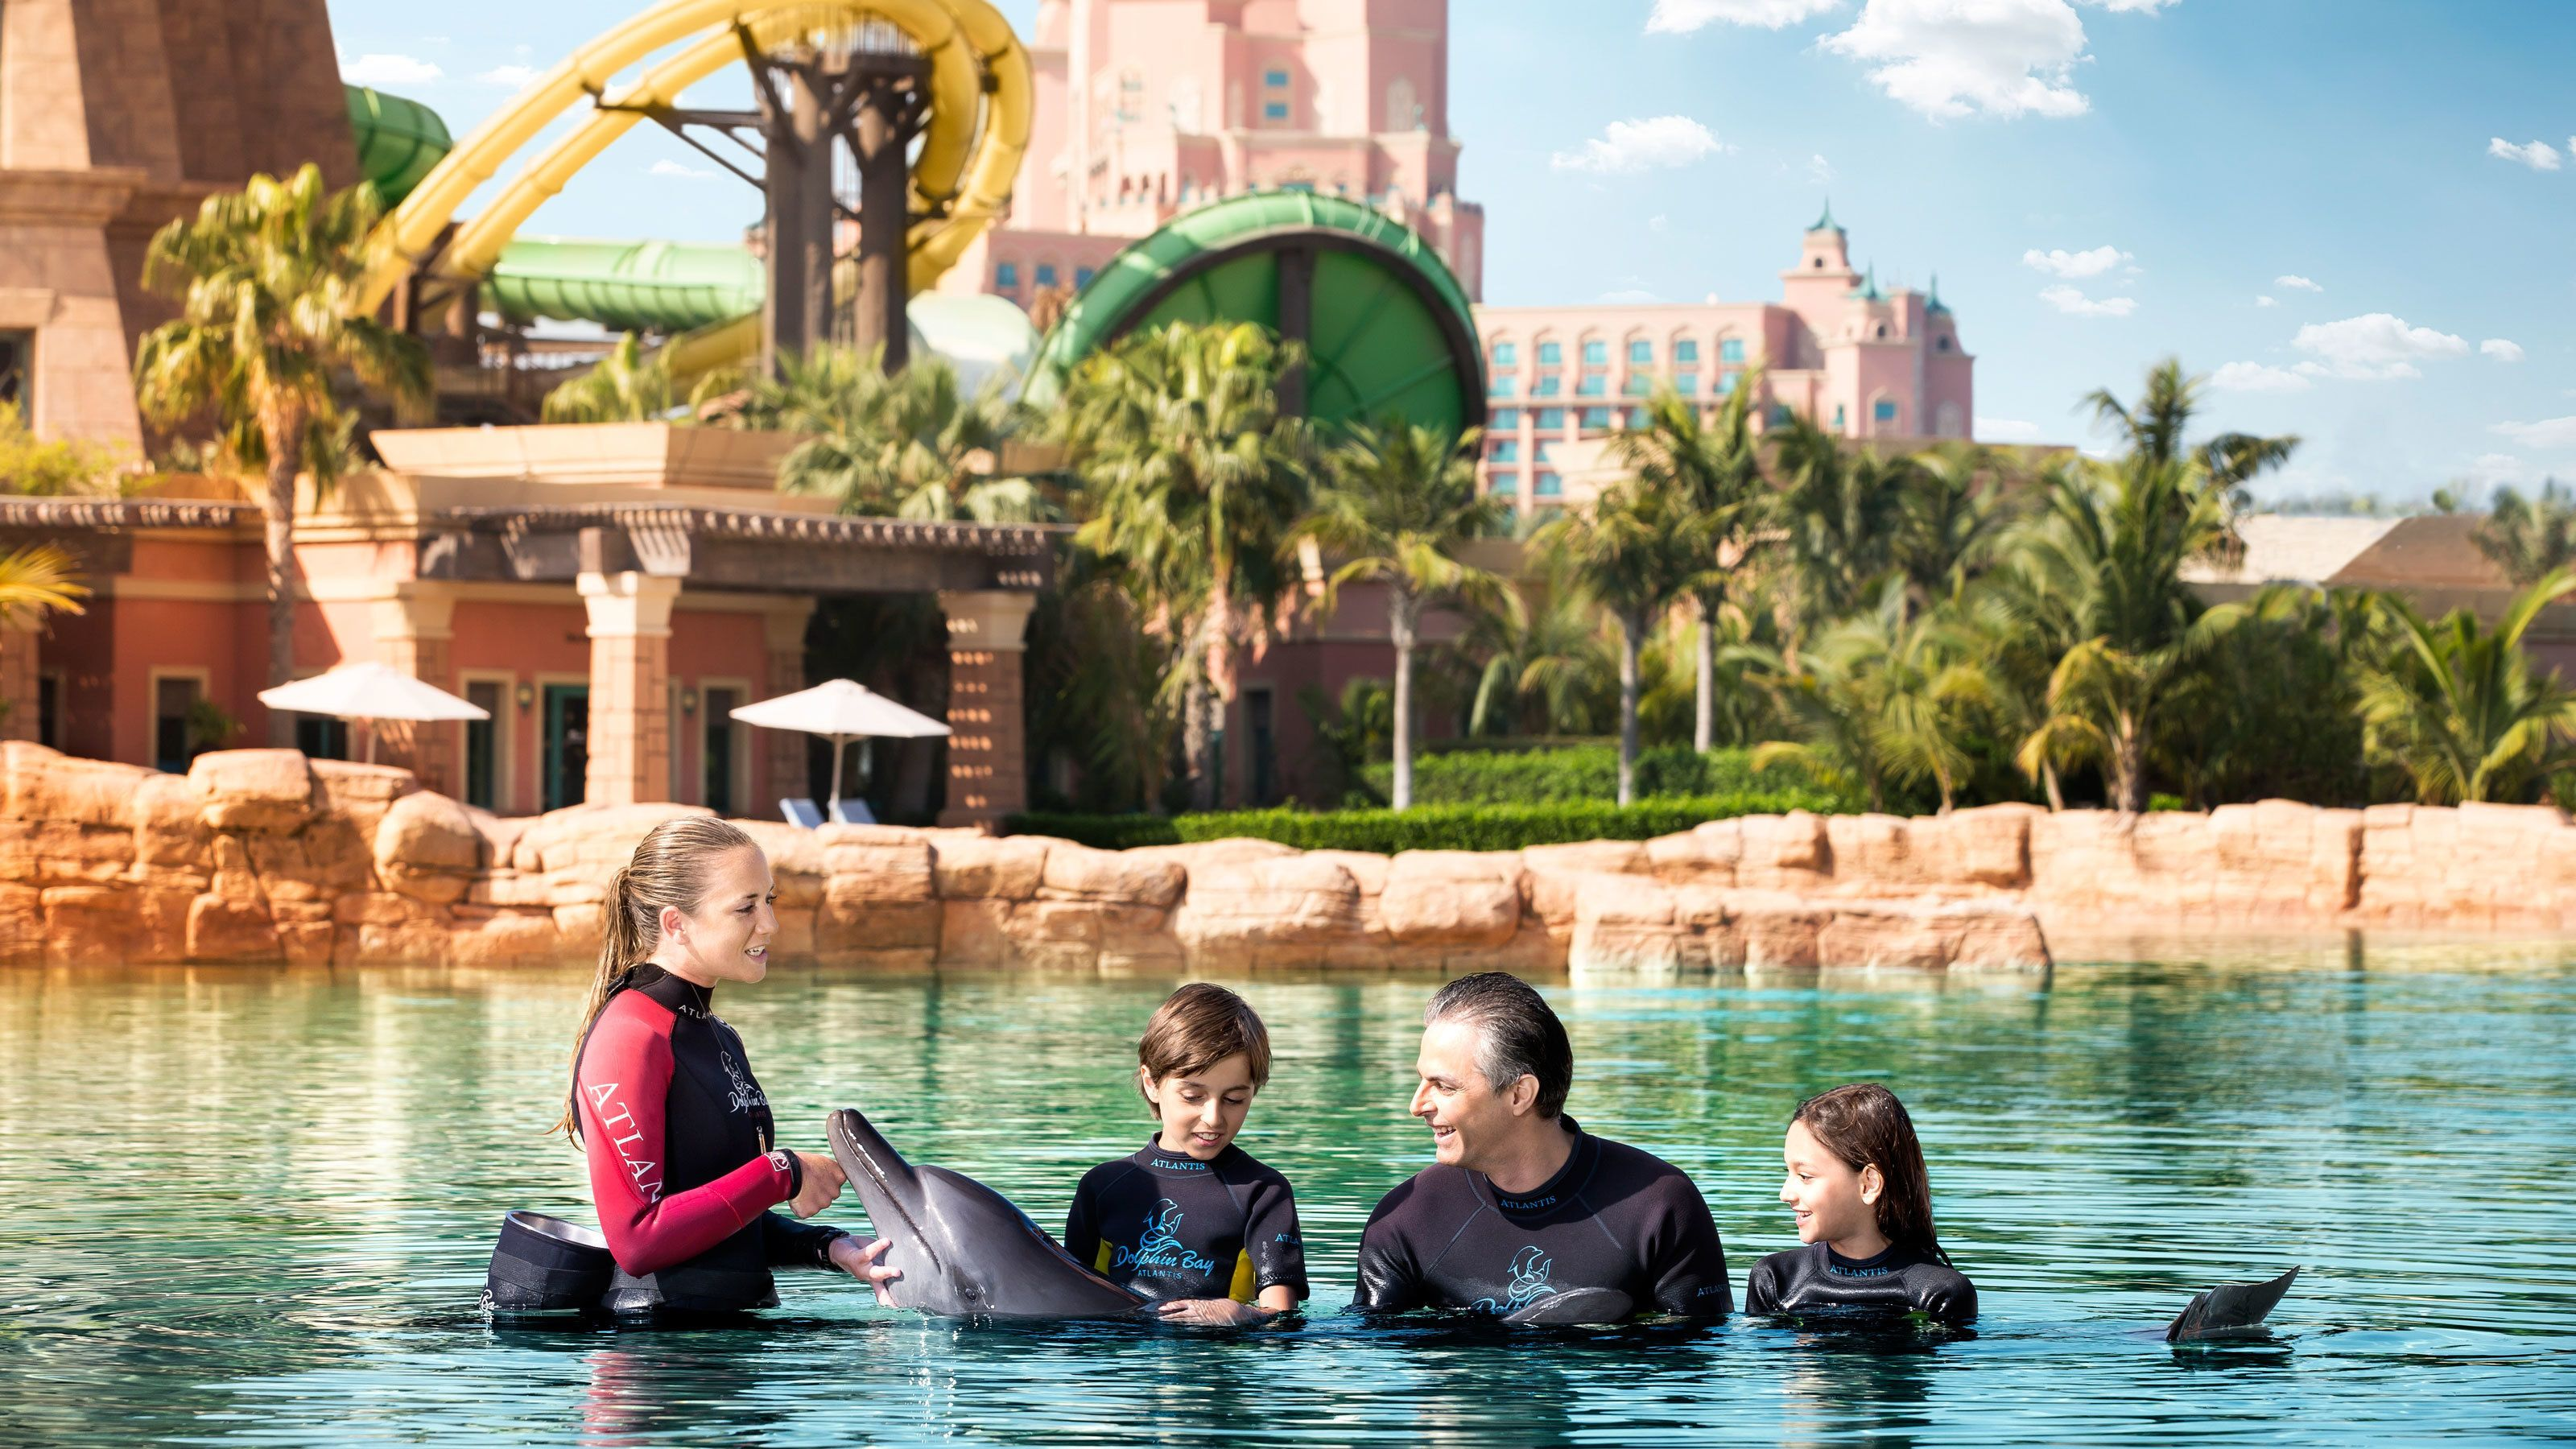 four people in large pool with dolphin in Dubai